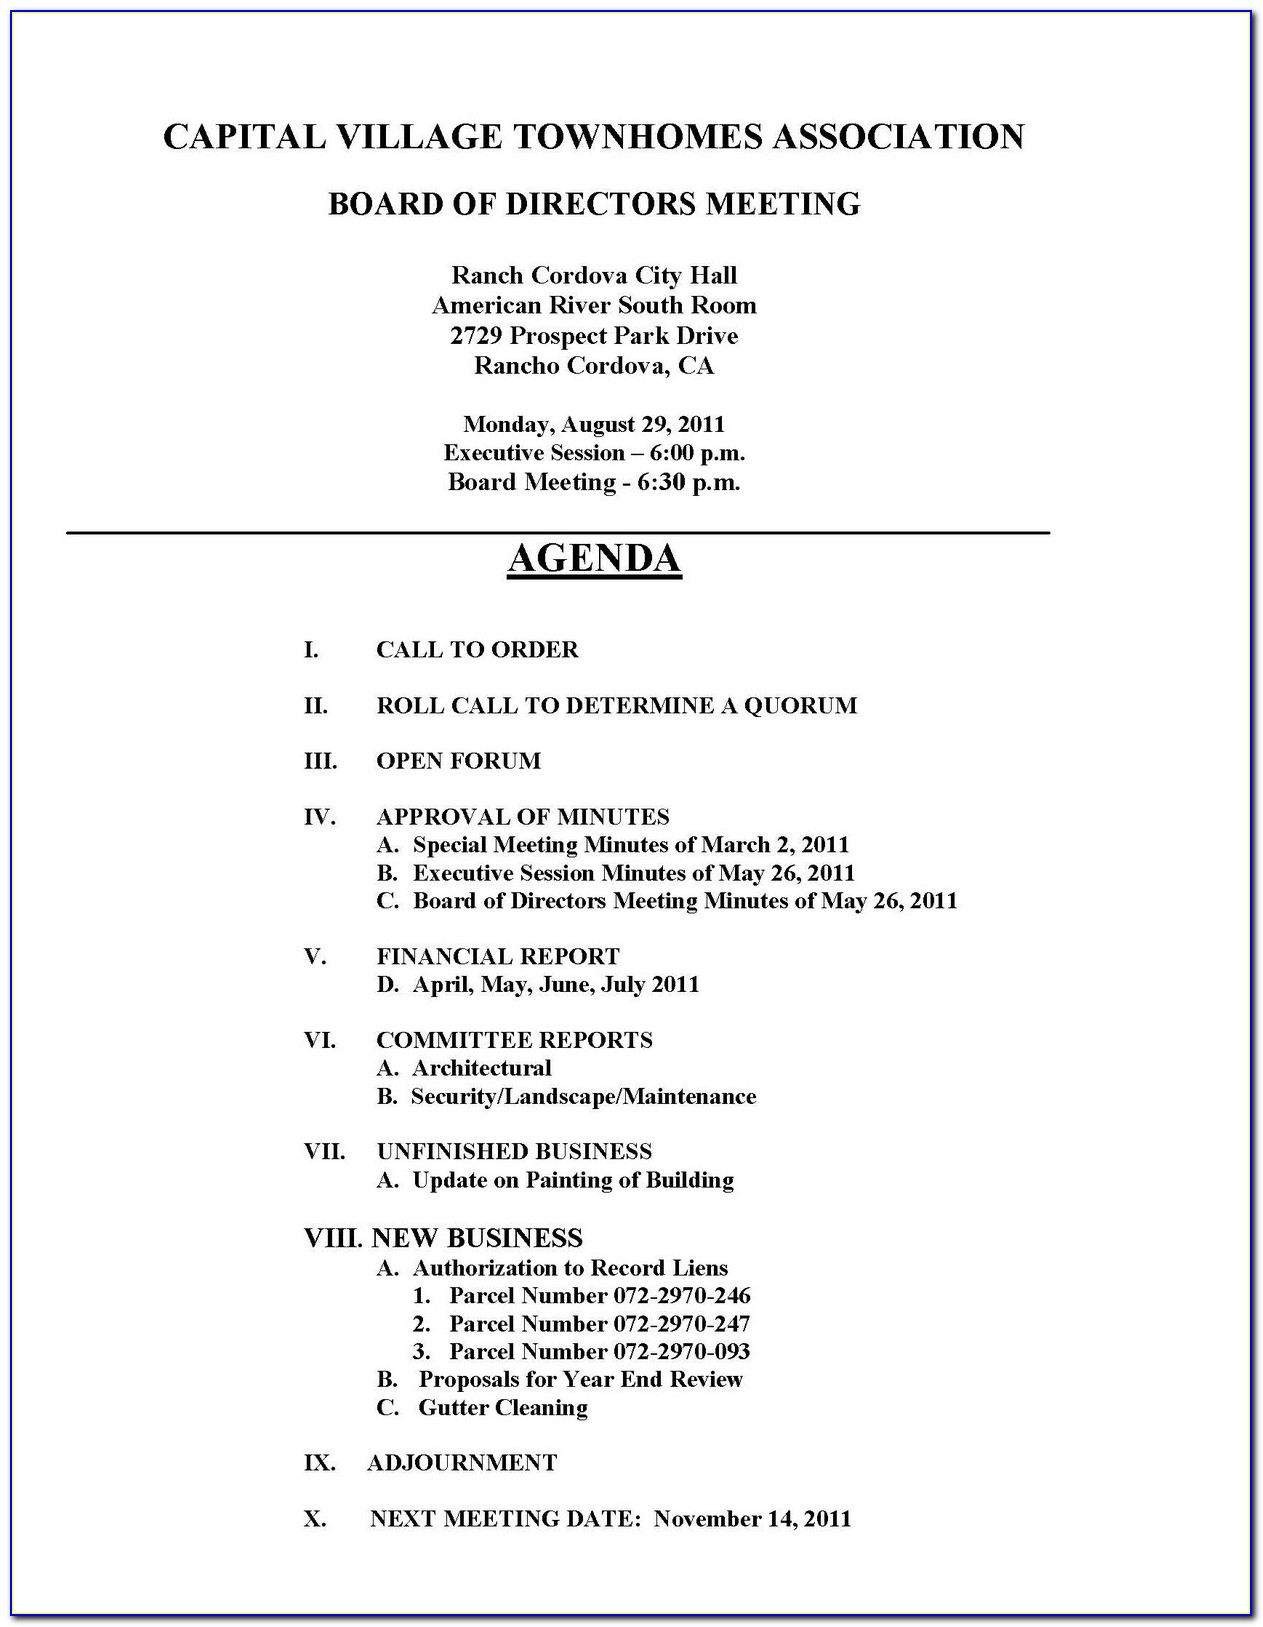 Homeowners Association Board Meeting Minutes Template